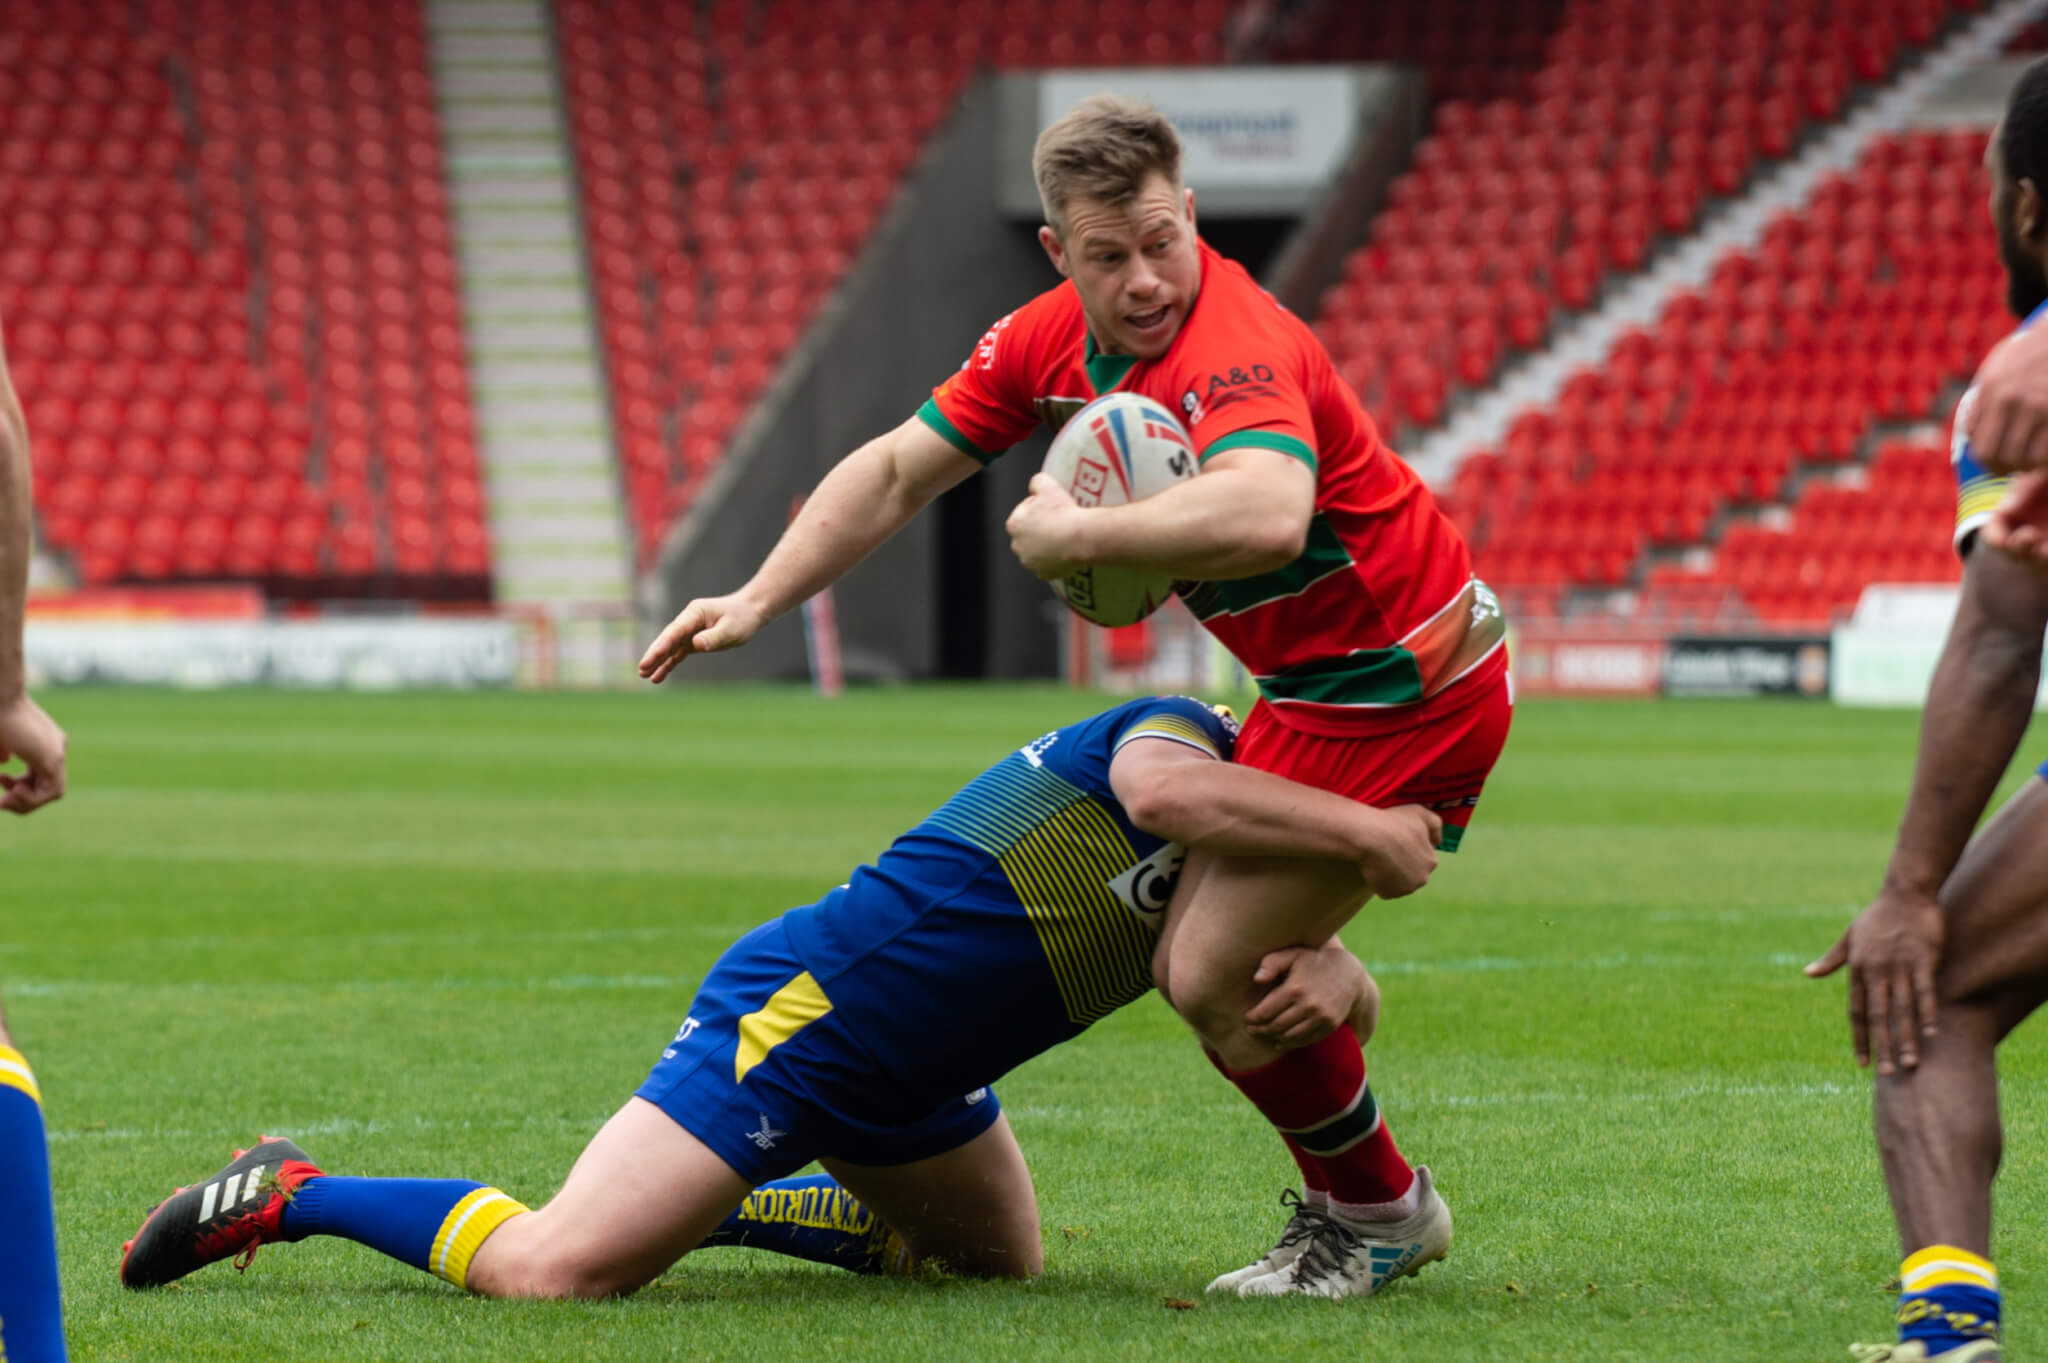 Preview: North Wales Crusaders v Doncaster